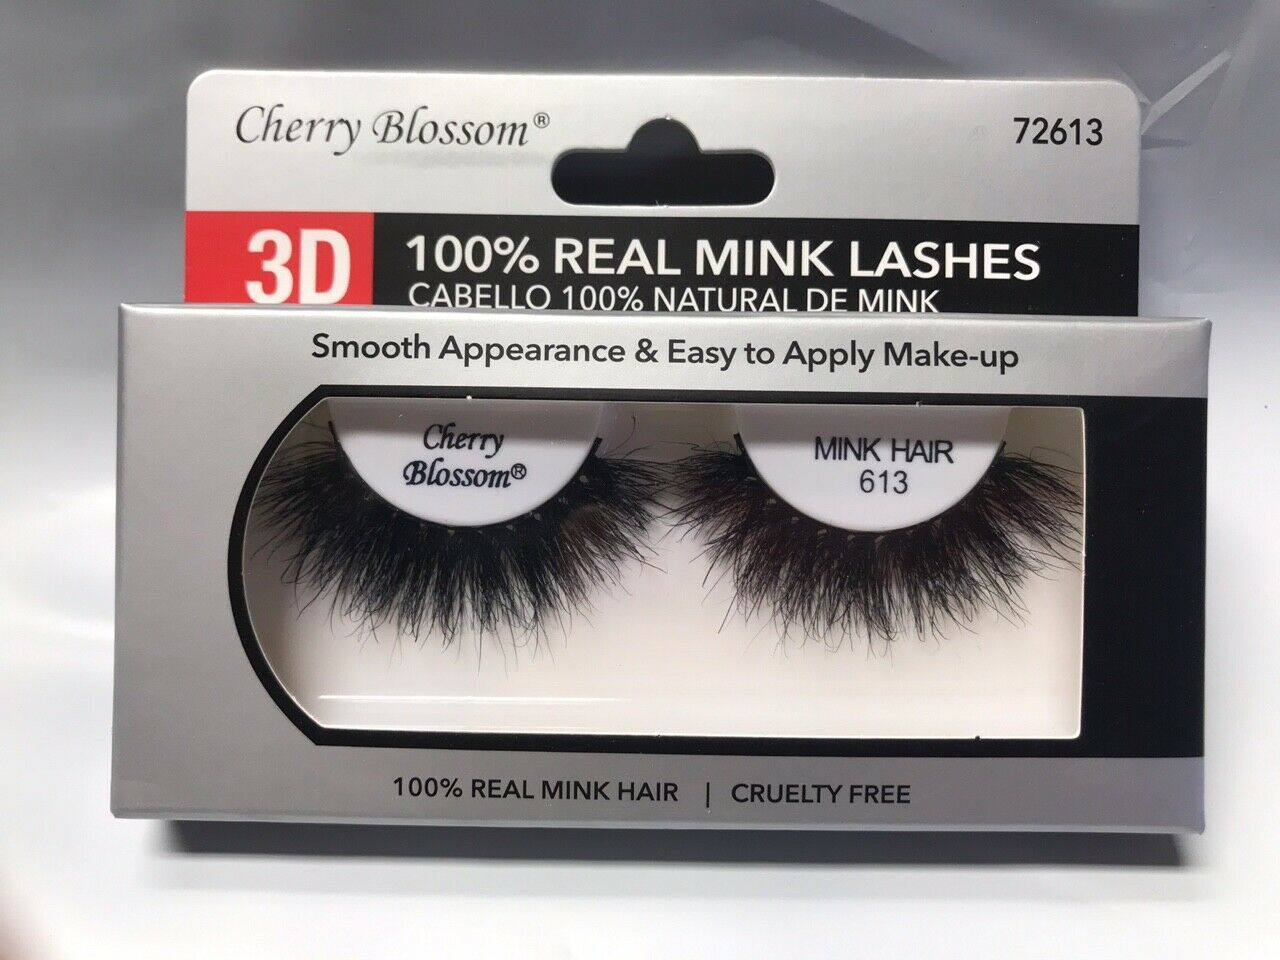 Primary image for CHERRY BLOSSOM 3D 100% REAL MINK LASHES #72613 CRUELTY FREE VERY LIGHT REUSABLE